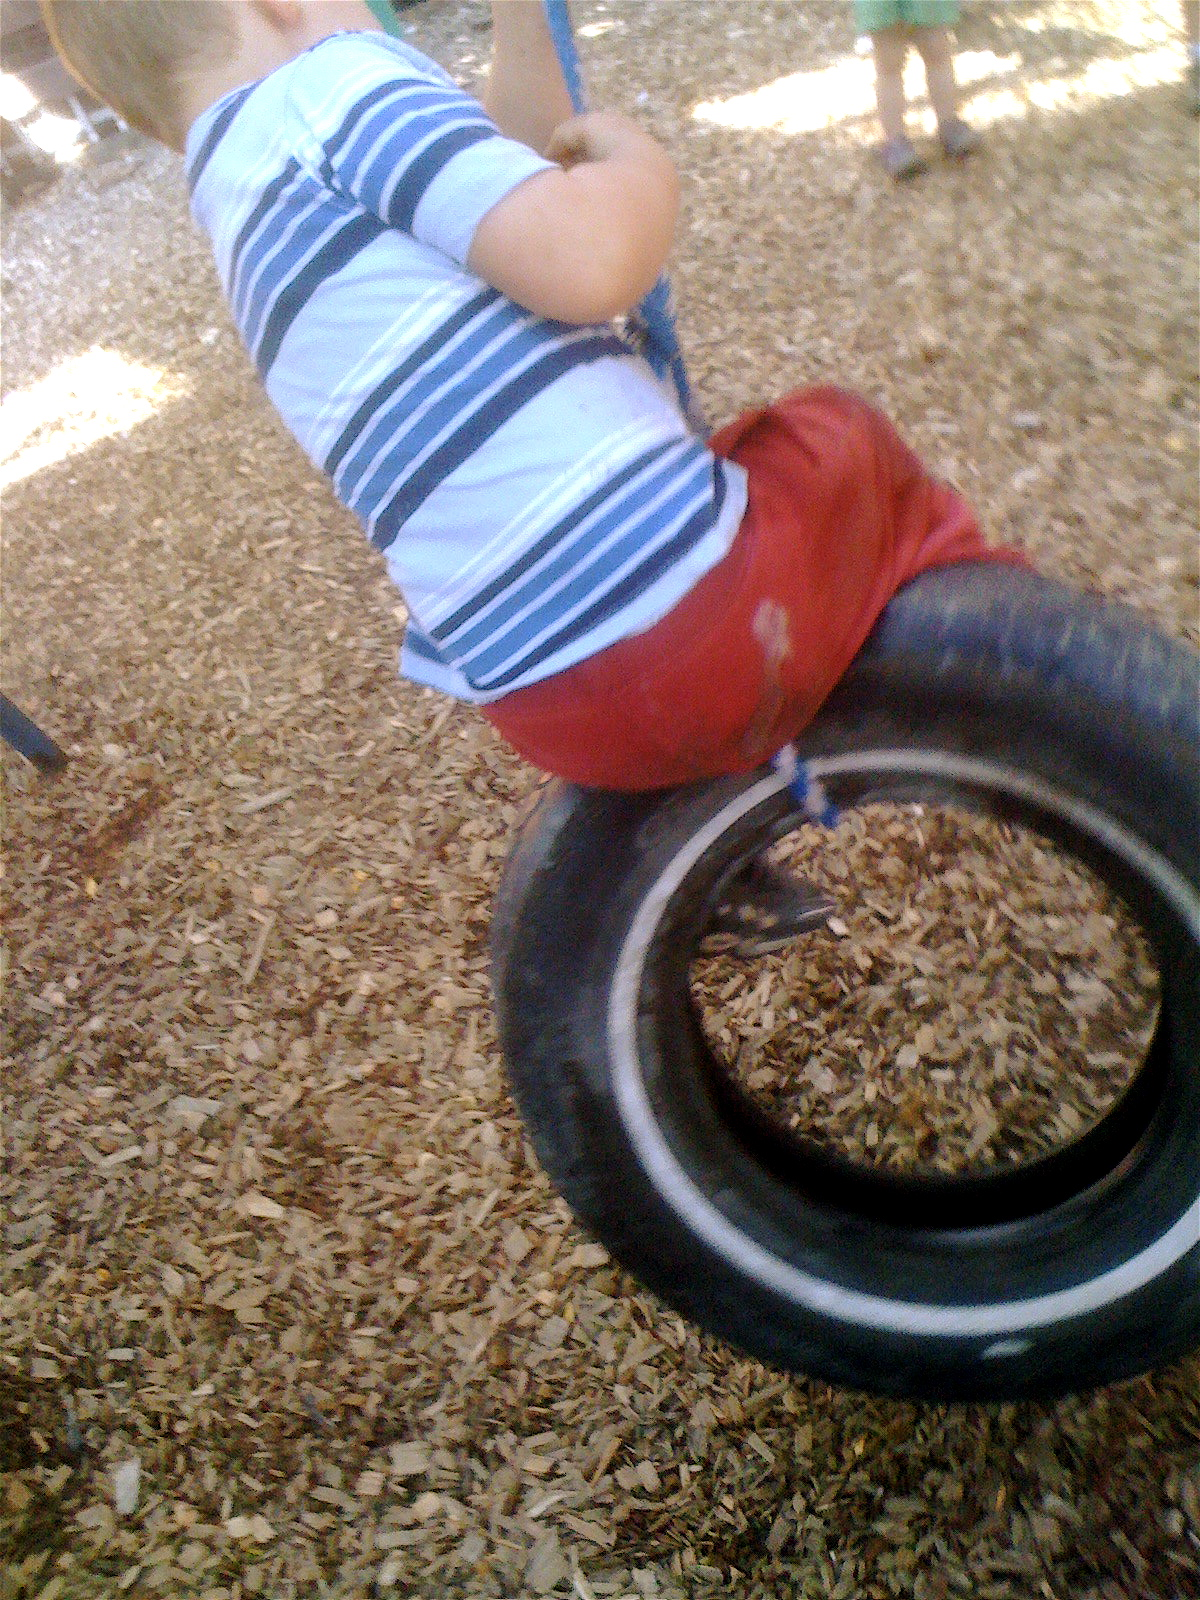 Definition of tire swinging